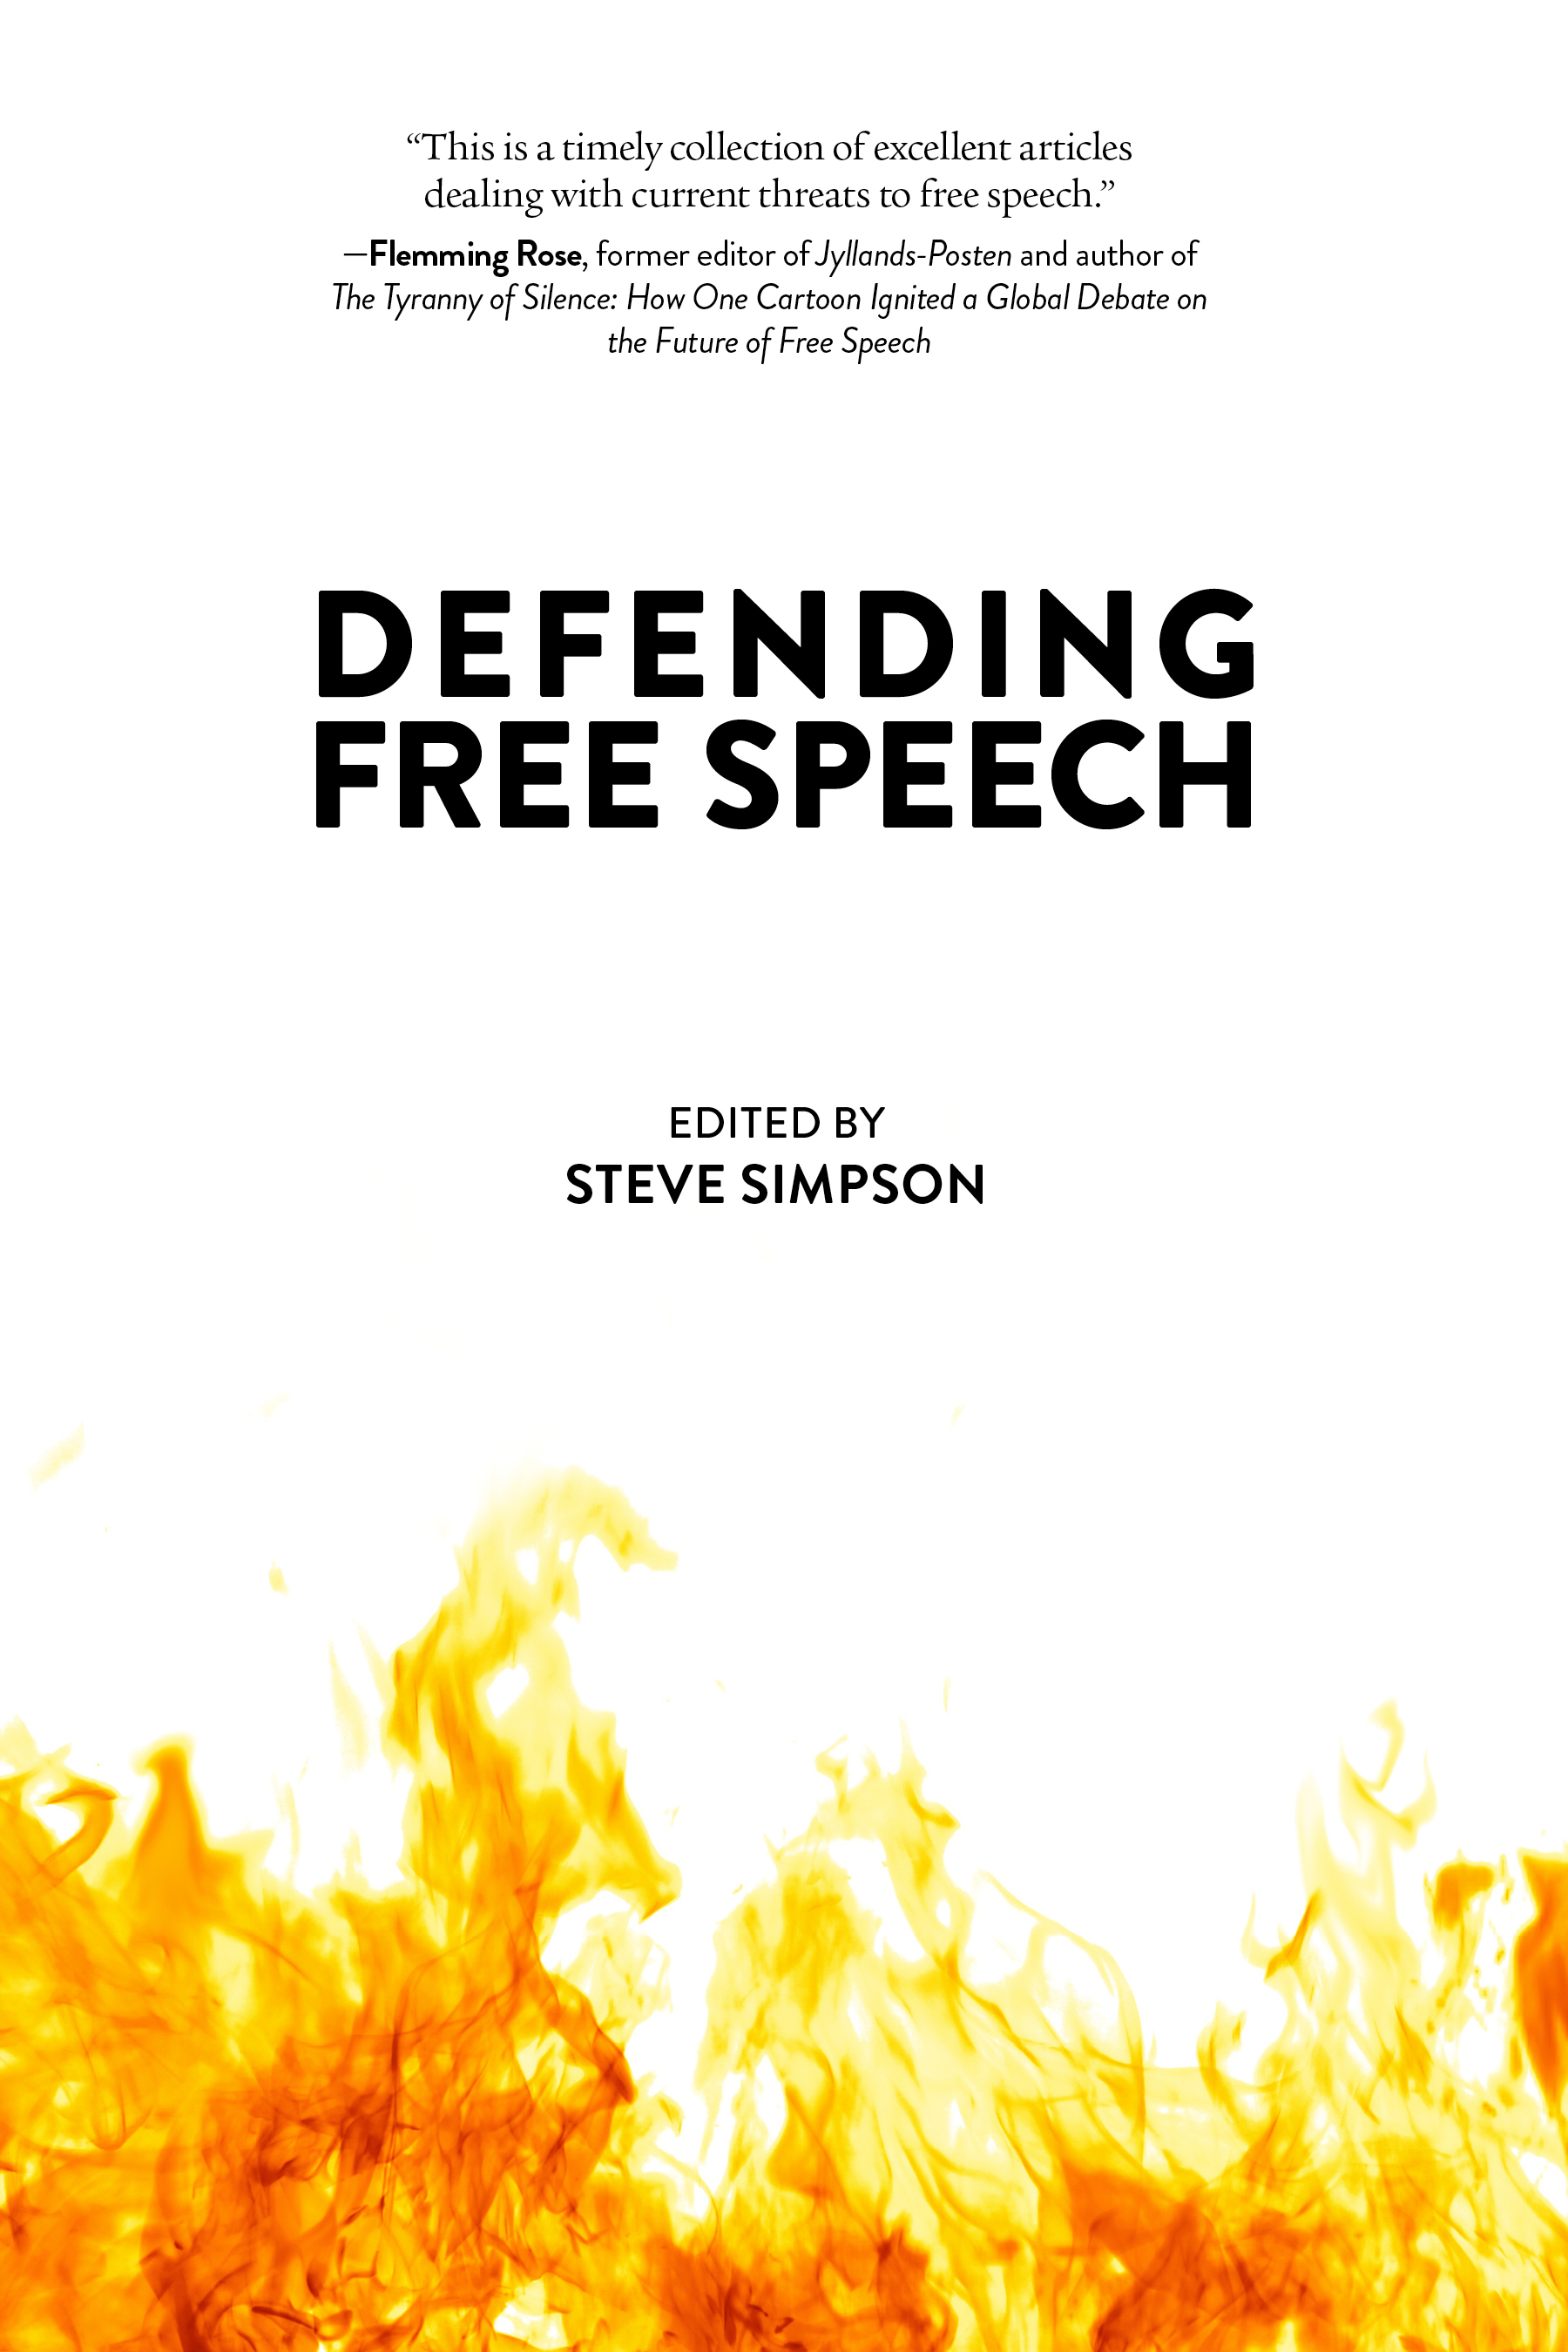 Defending_Free_Speec_Book_Cover_Front.jpg